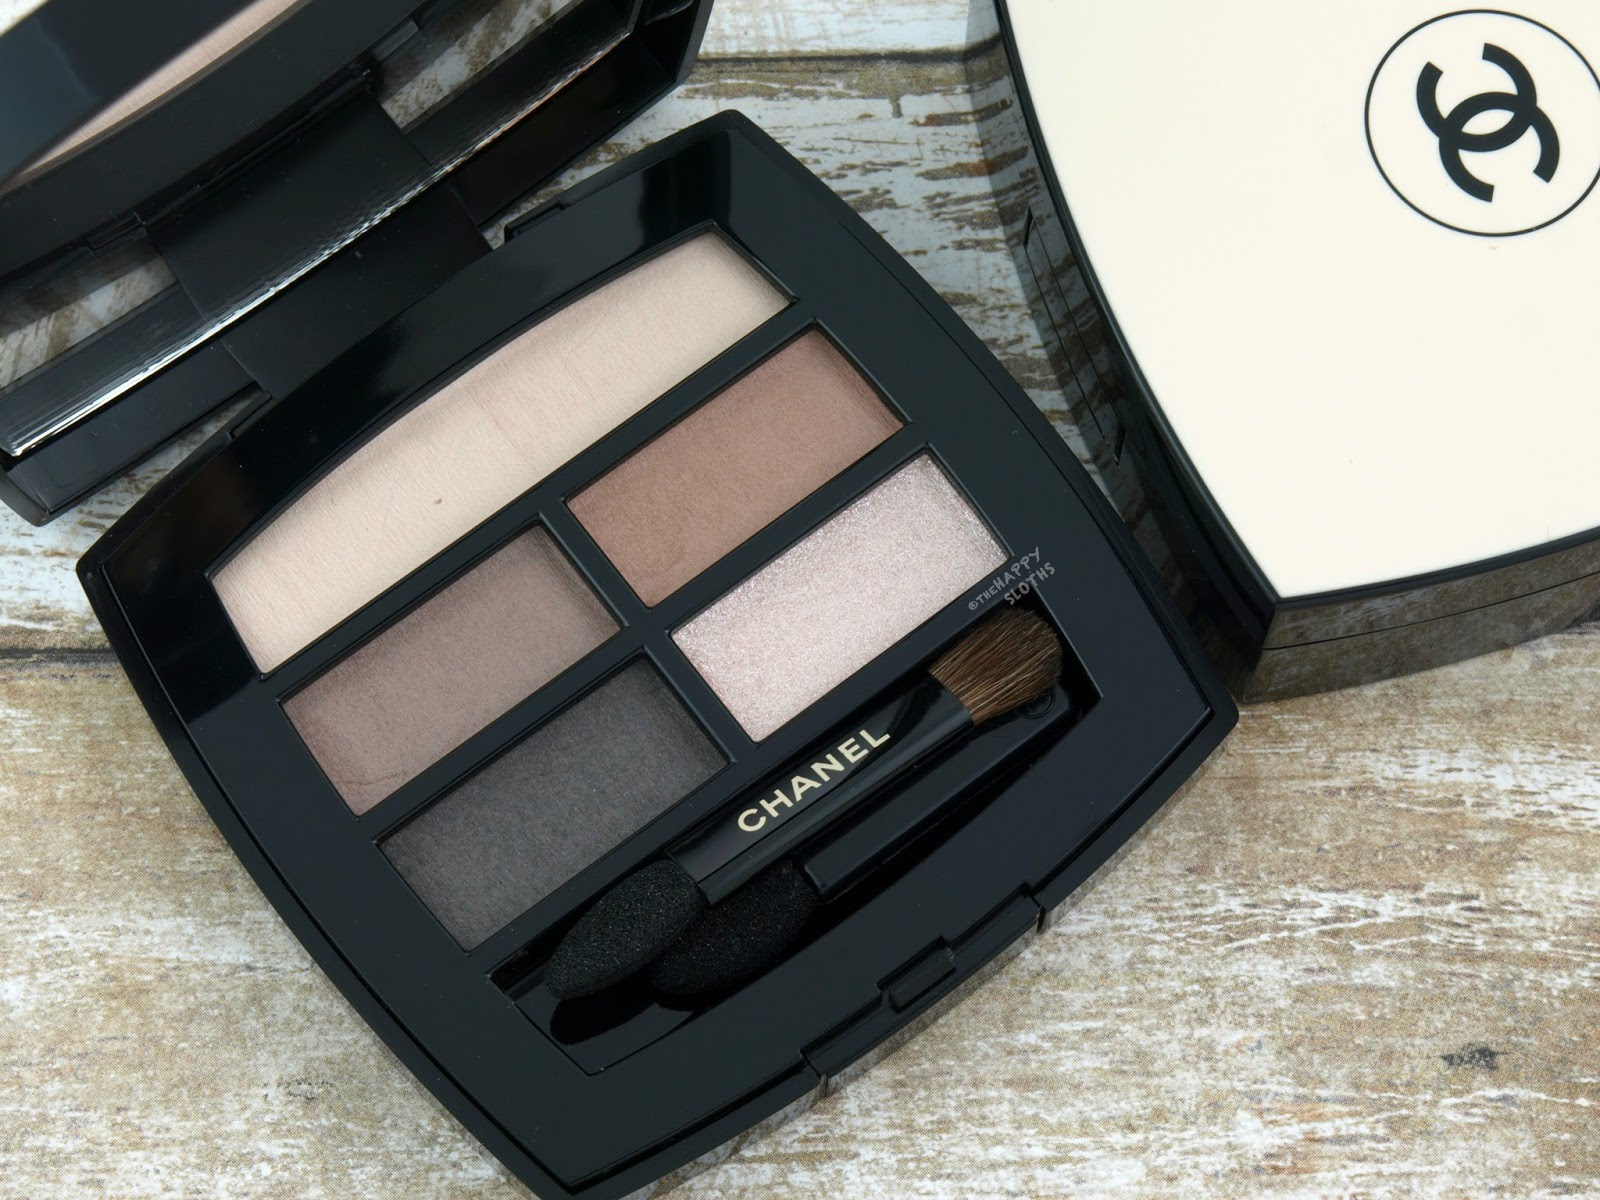 Chanel Les Beiges Healthy Glow Natural Eyeshadow Palette: Review and Swatches